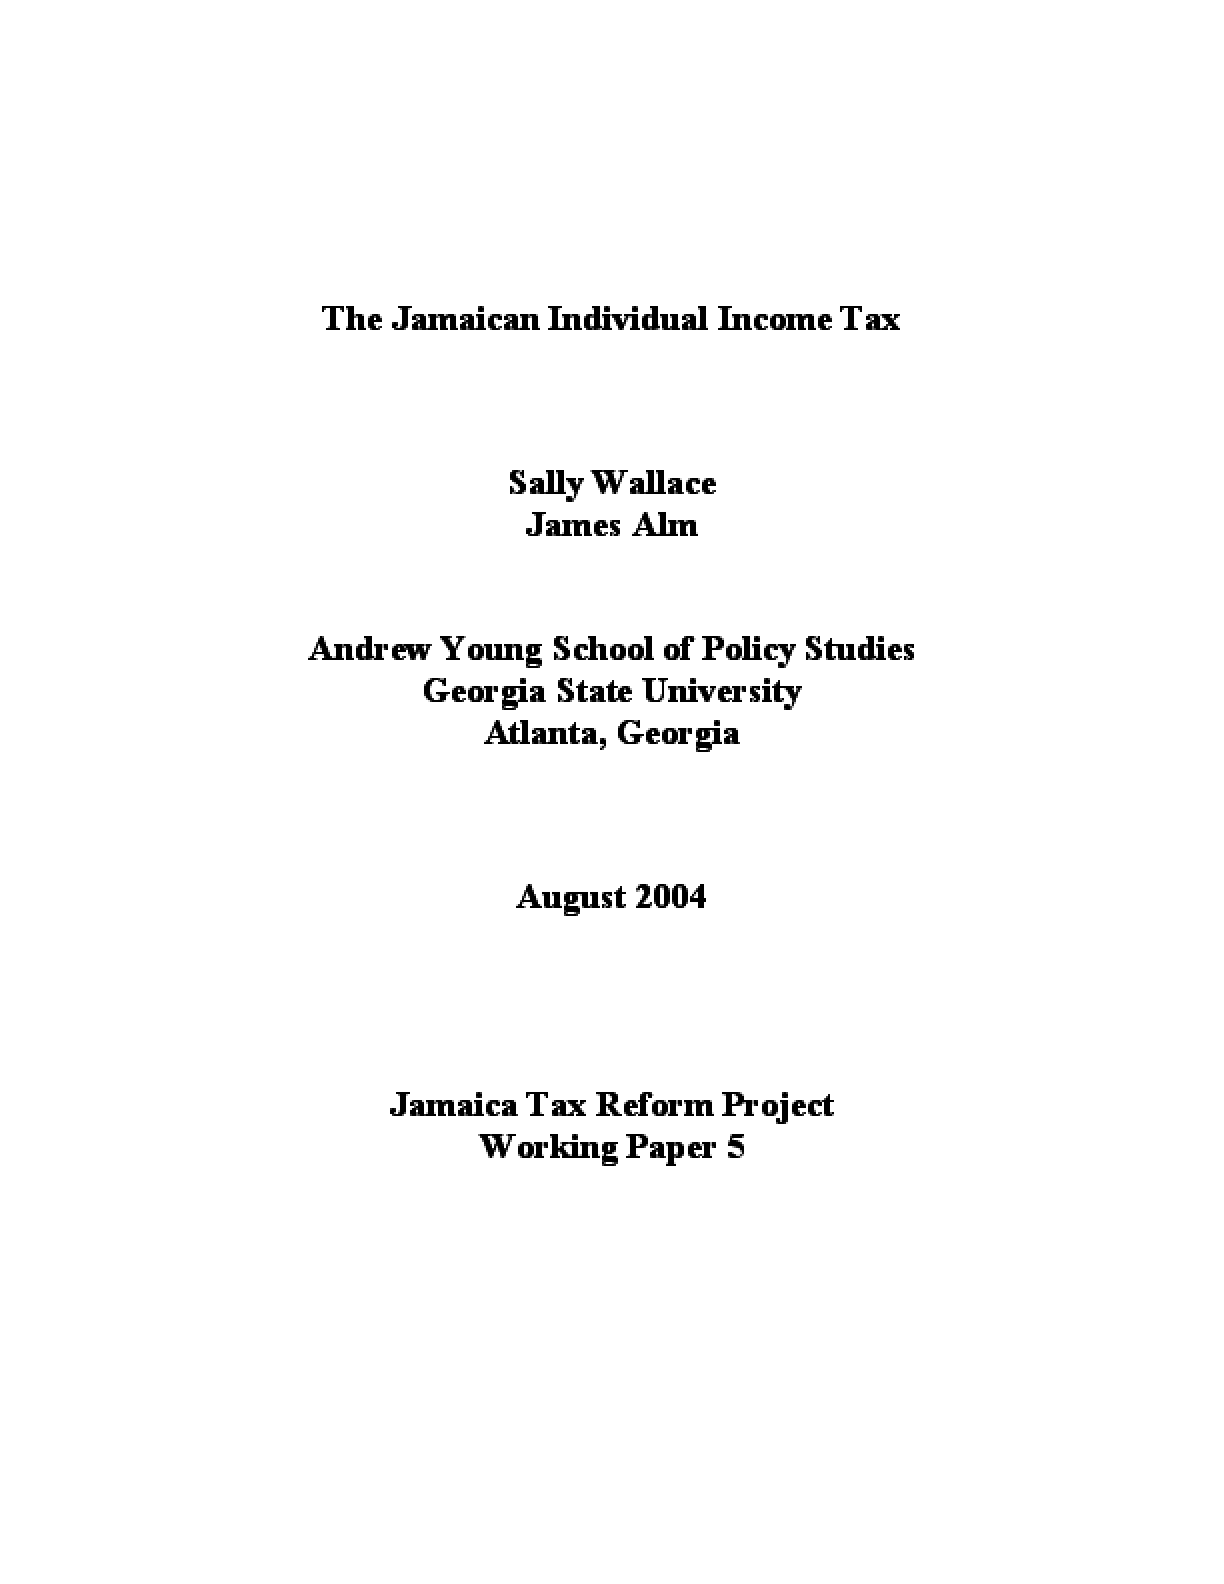 The Individual Income Tax in Jamaica